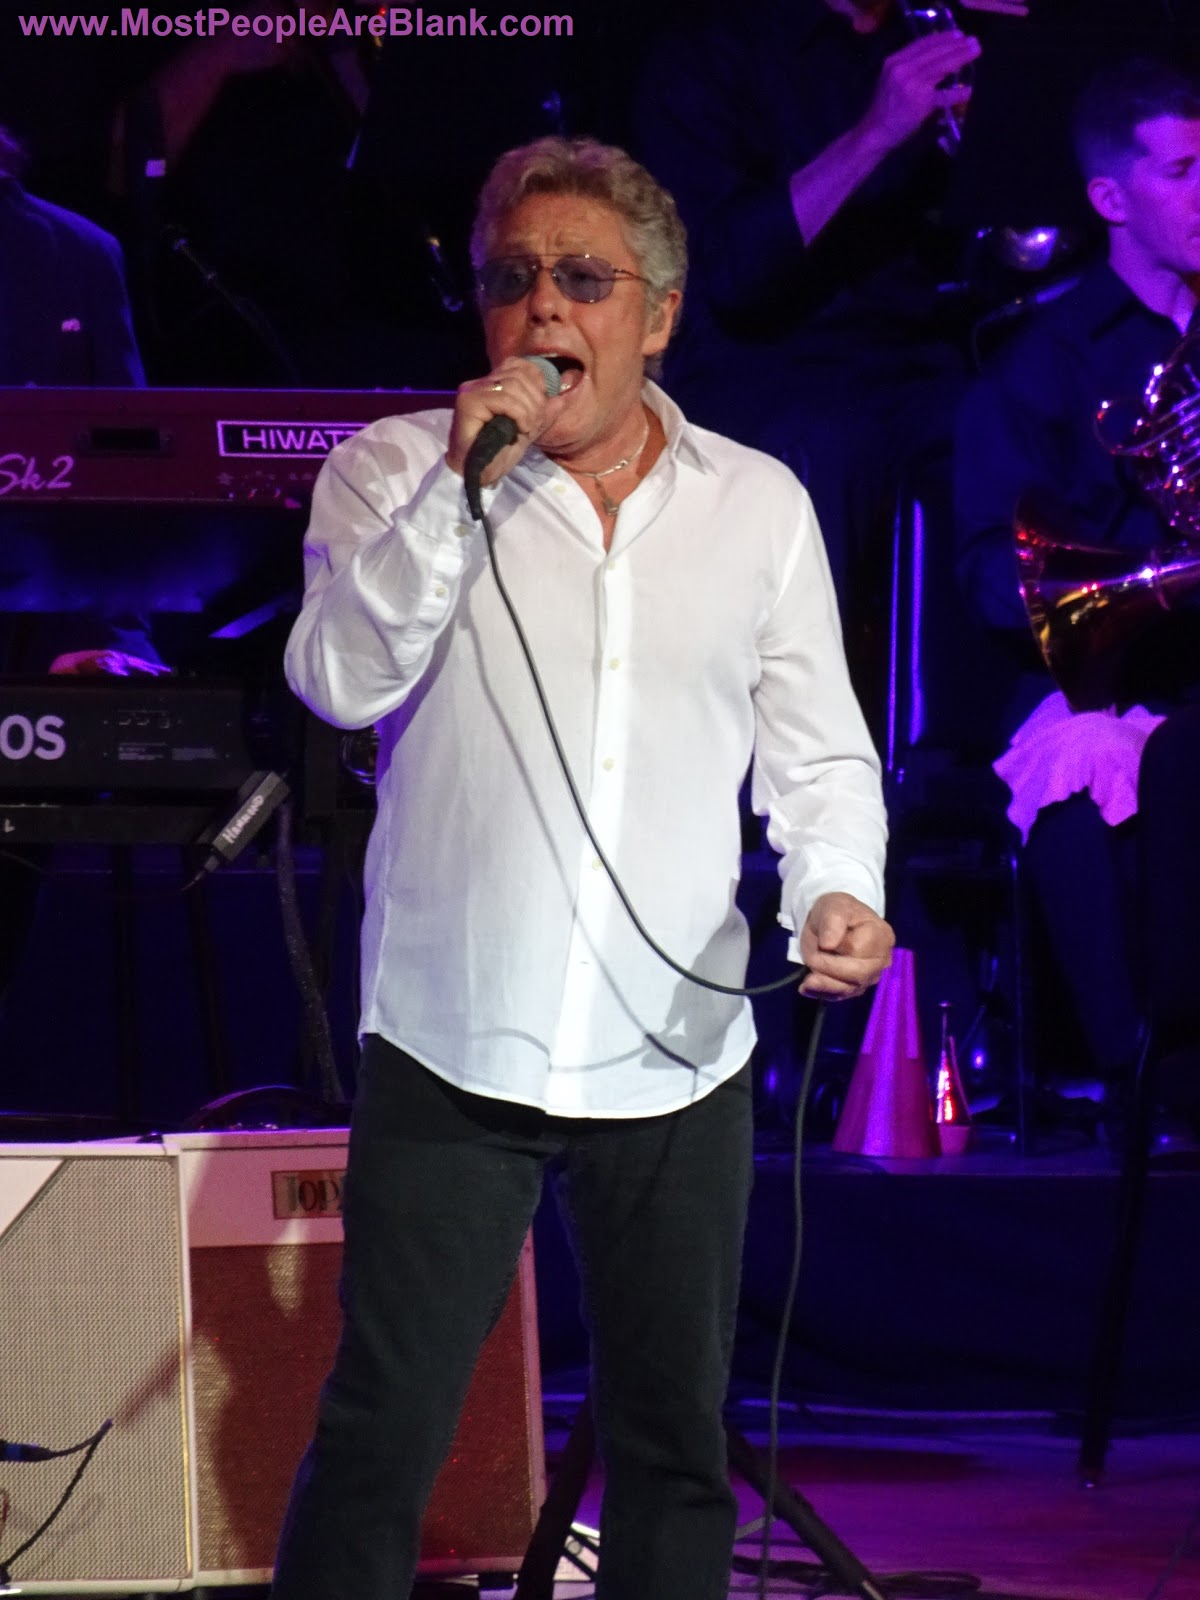 8fa1bc8a5d0dfd Most People Are blank  Roger Daltrey performs The Who s